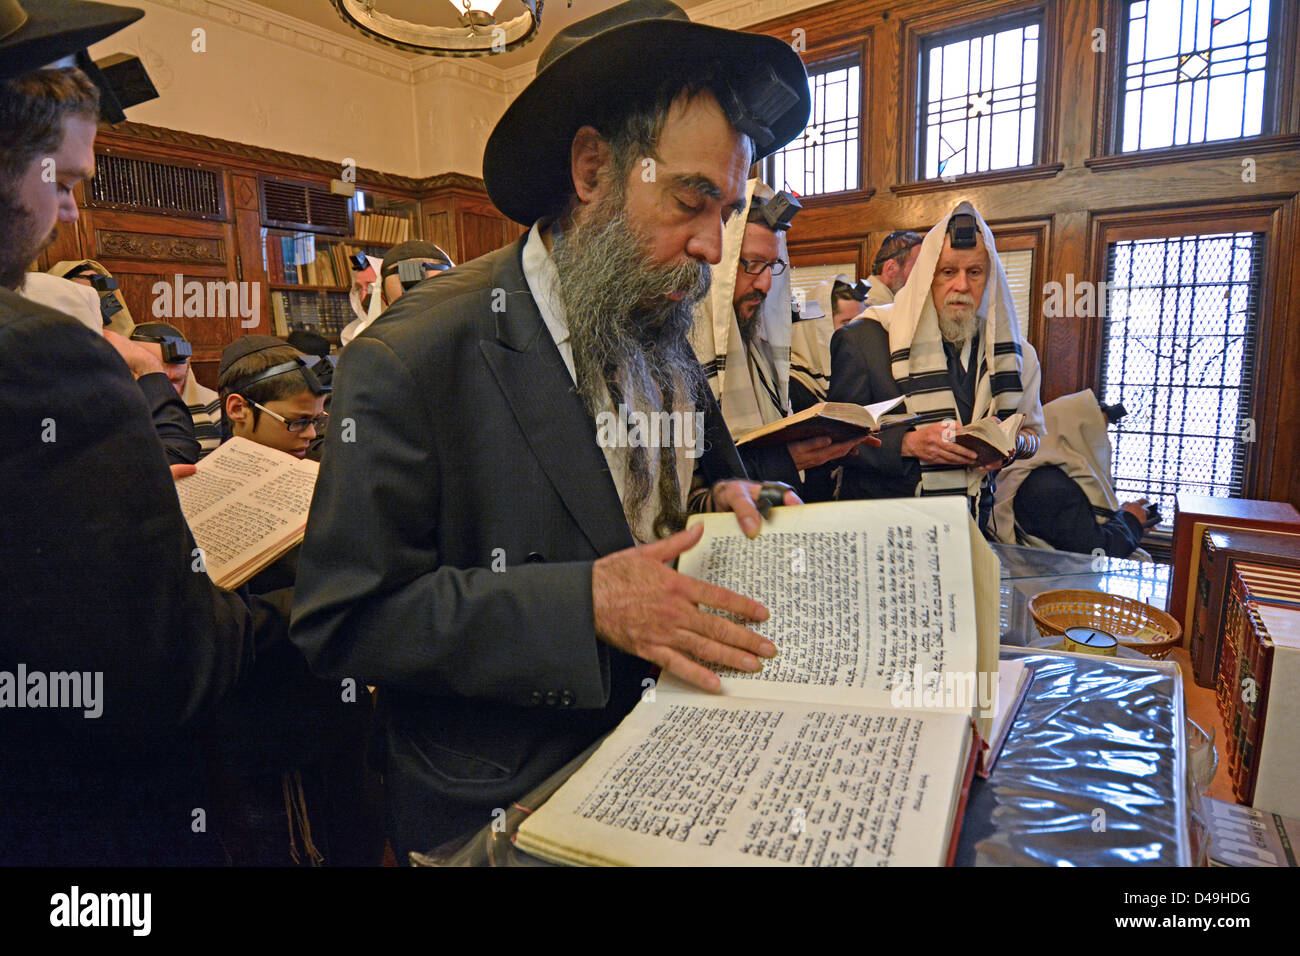 Weekday morning services in the Rebbe's office at Lubavitch Headquarters in Brooklyn, New York - Stock Image